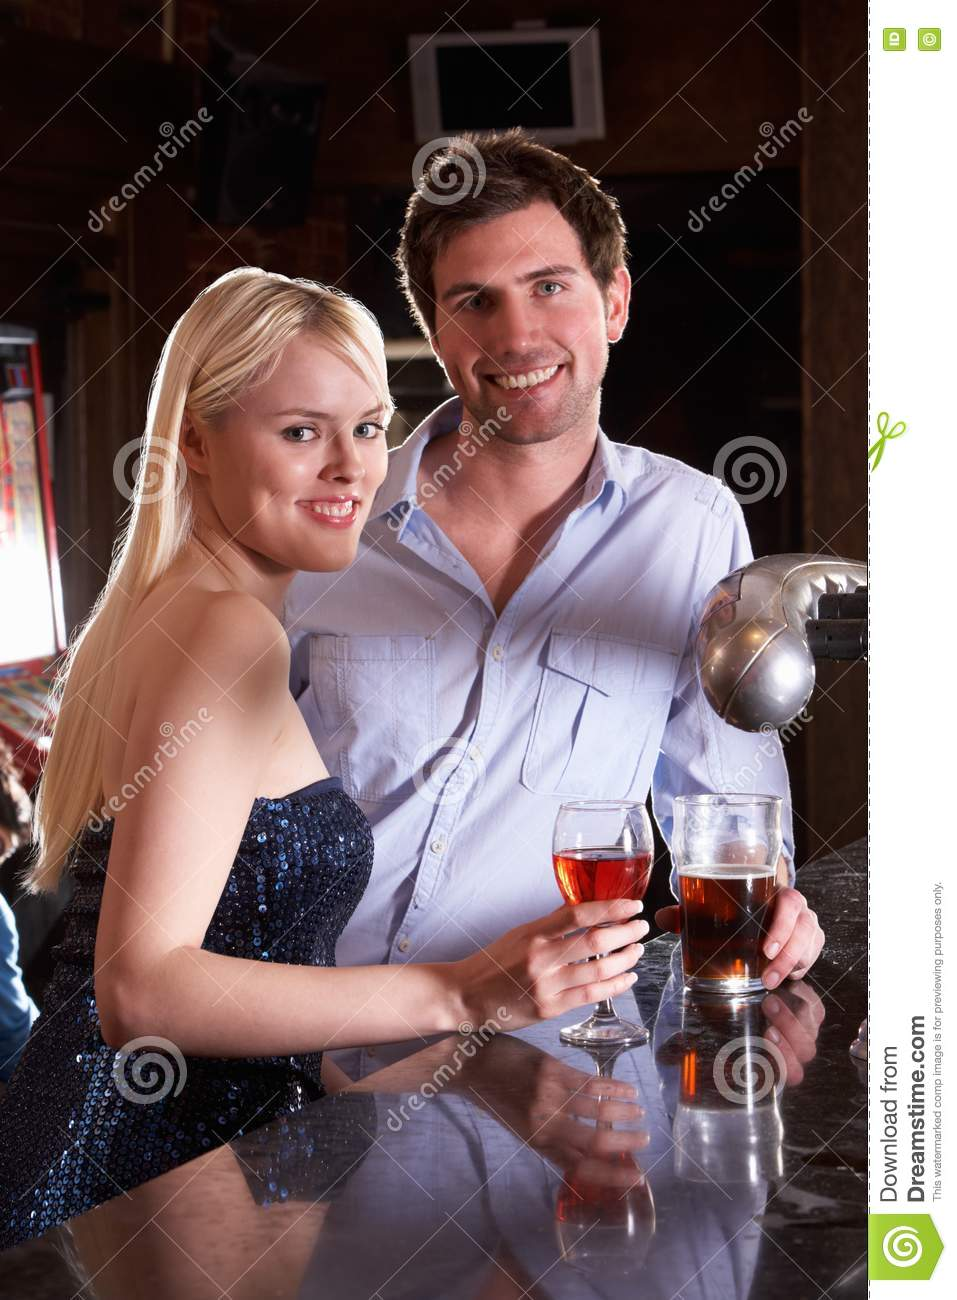 photo man and woman posing beside bar pics stock photos all sites: images small talk